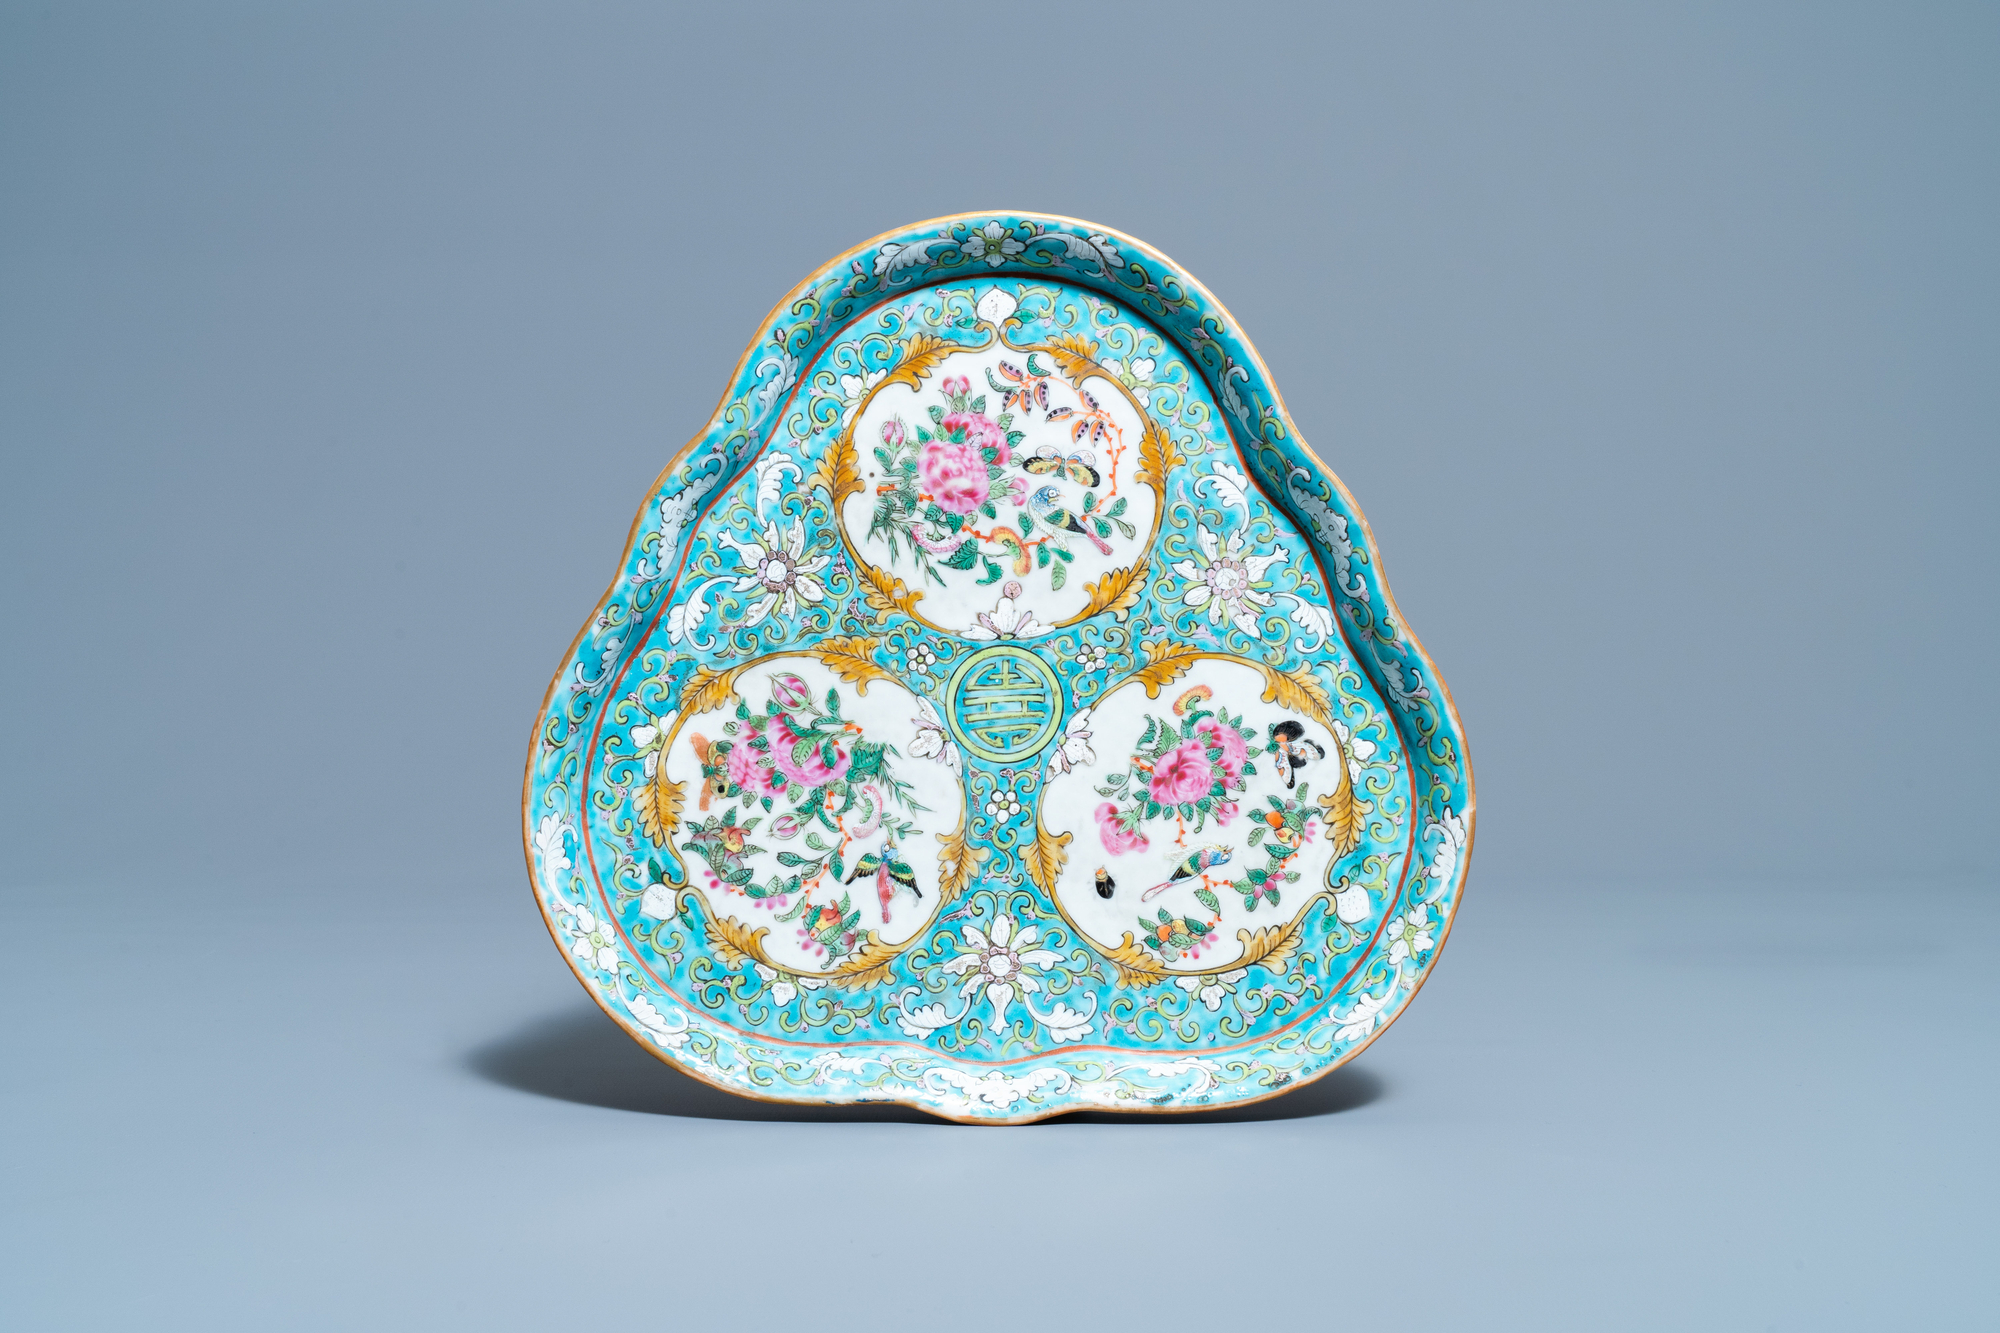 A Chinese famille rose 'tete-a-tete' tea service on tray, 19th C. - Image 2 of 10